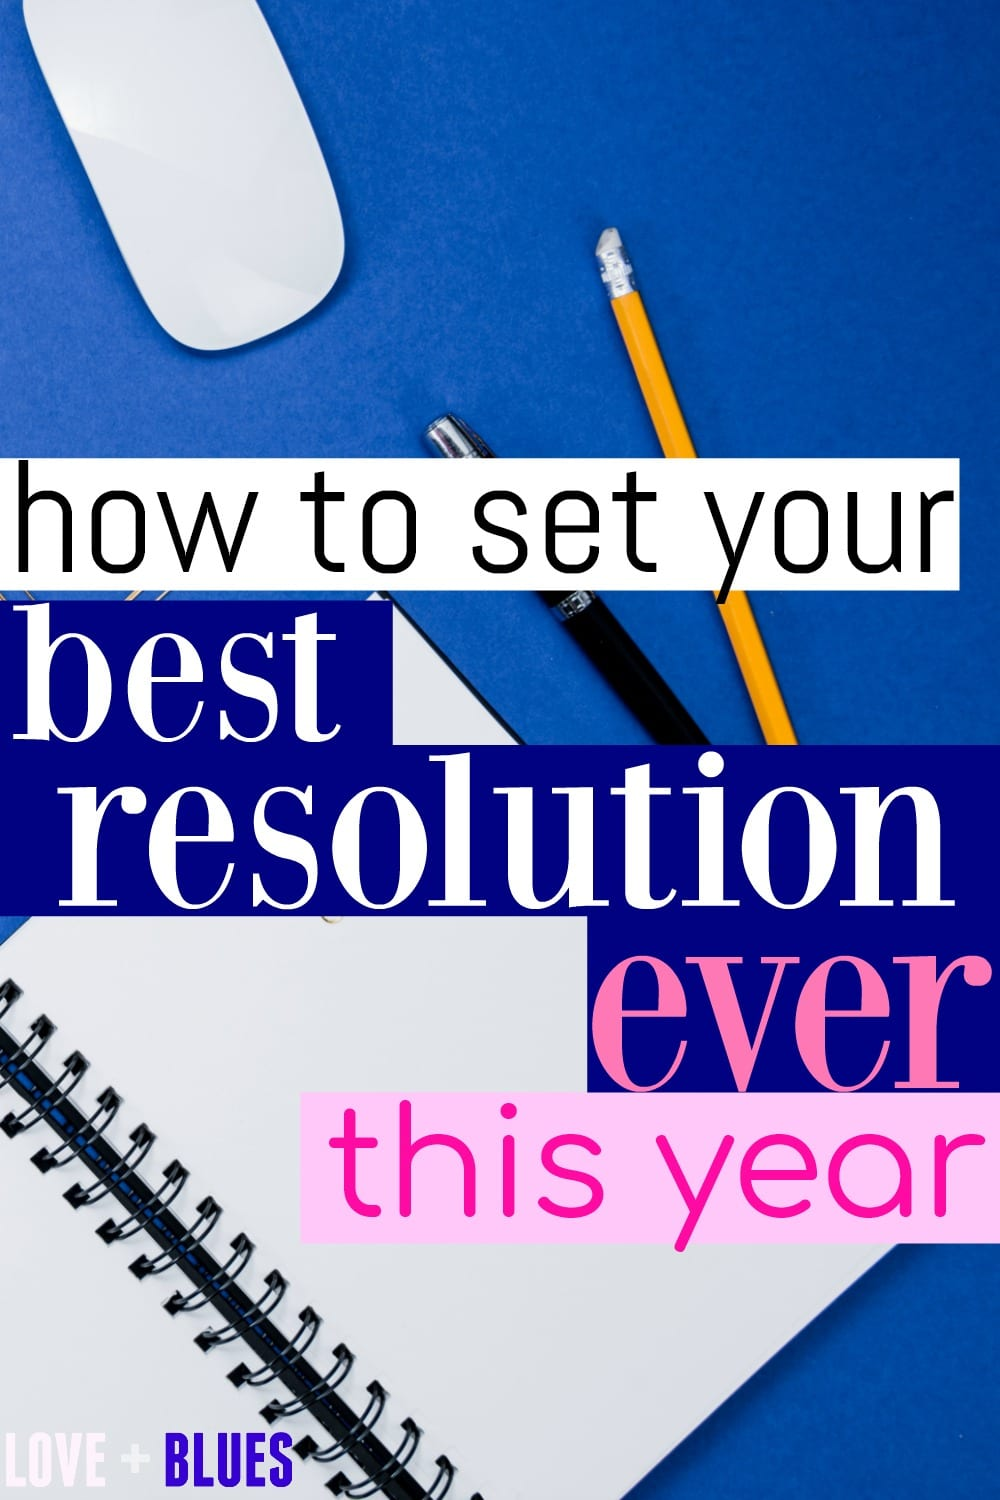 Great ideas! I've failed at ALL my New Year's Resolutions the past few years, but hopefully I can change that streak this year... haha.